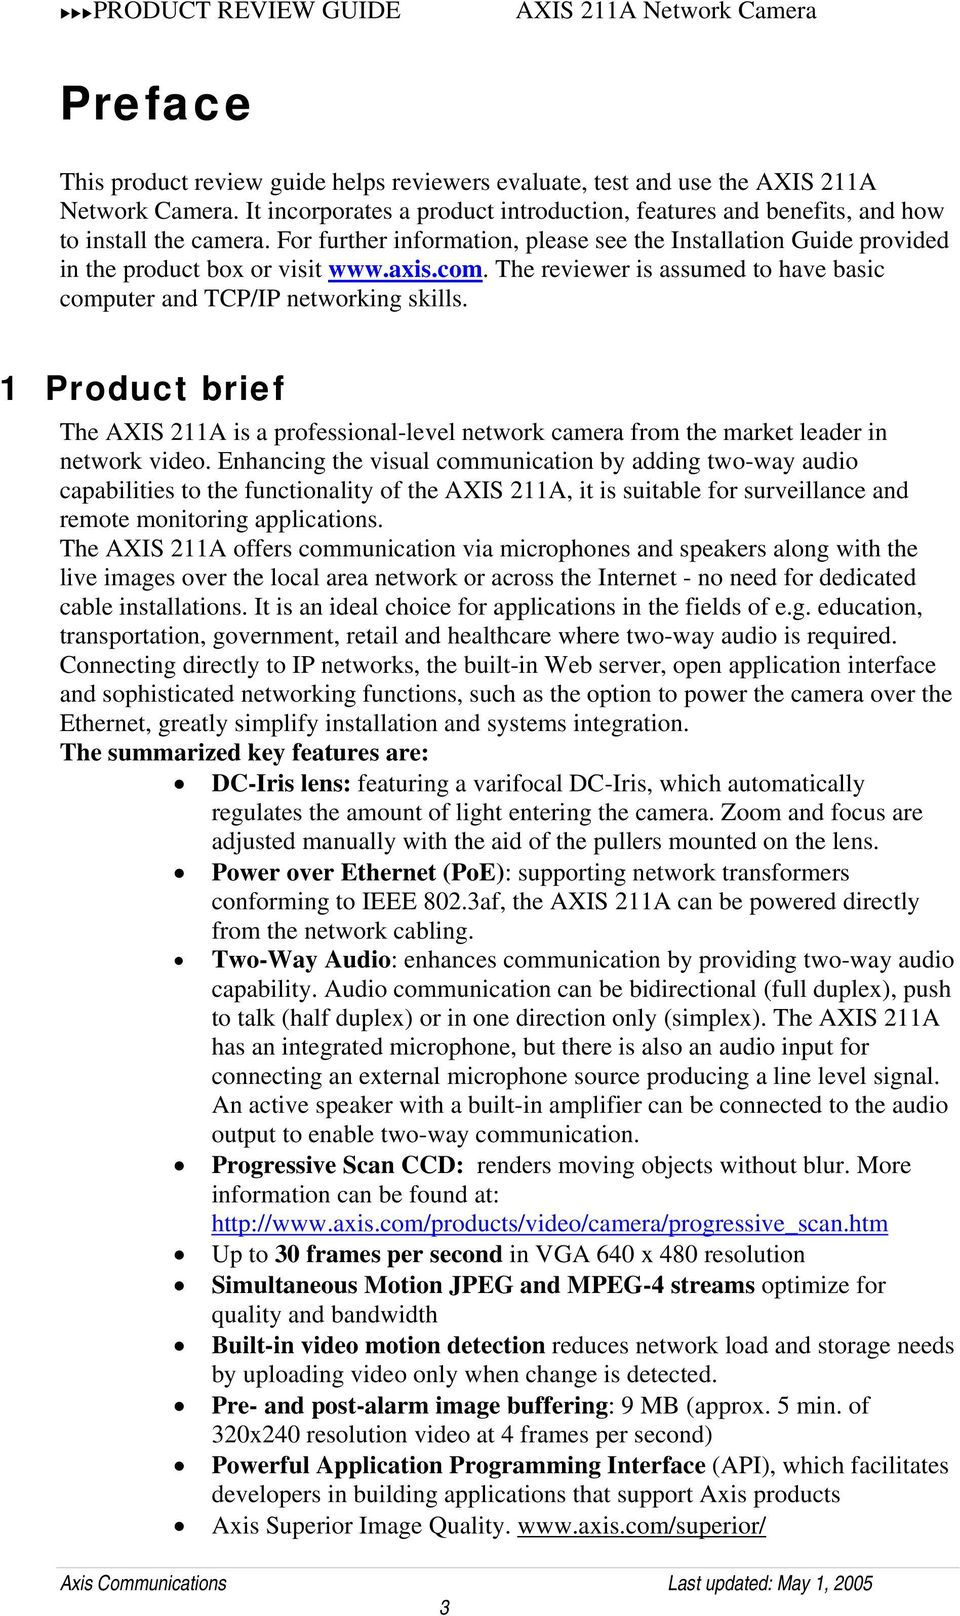 1 Product brief The AXIS 211A is a professional-level network camera from the market leader in network video.